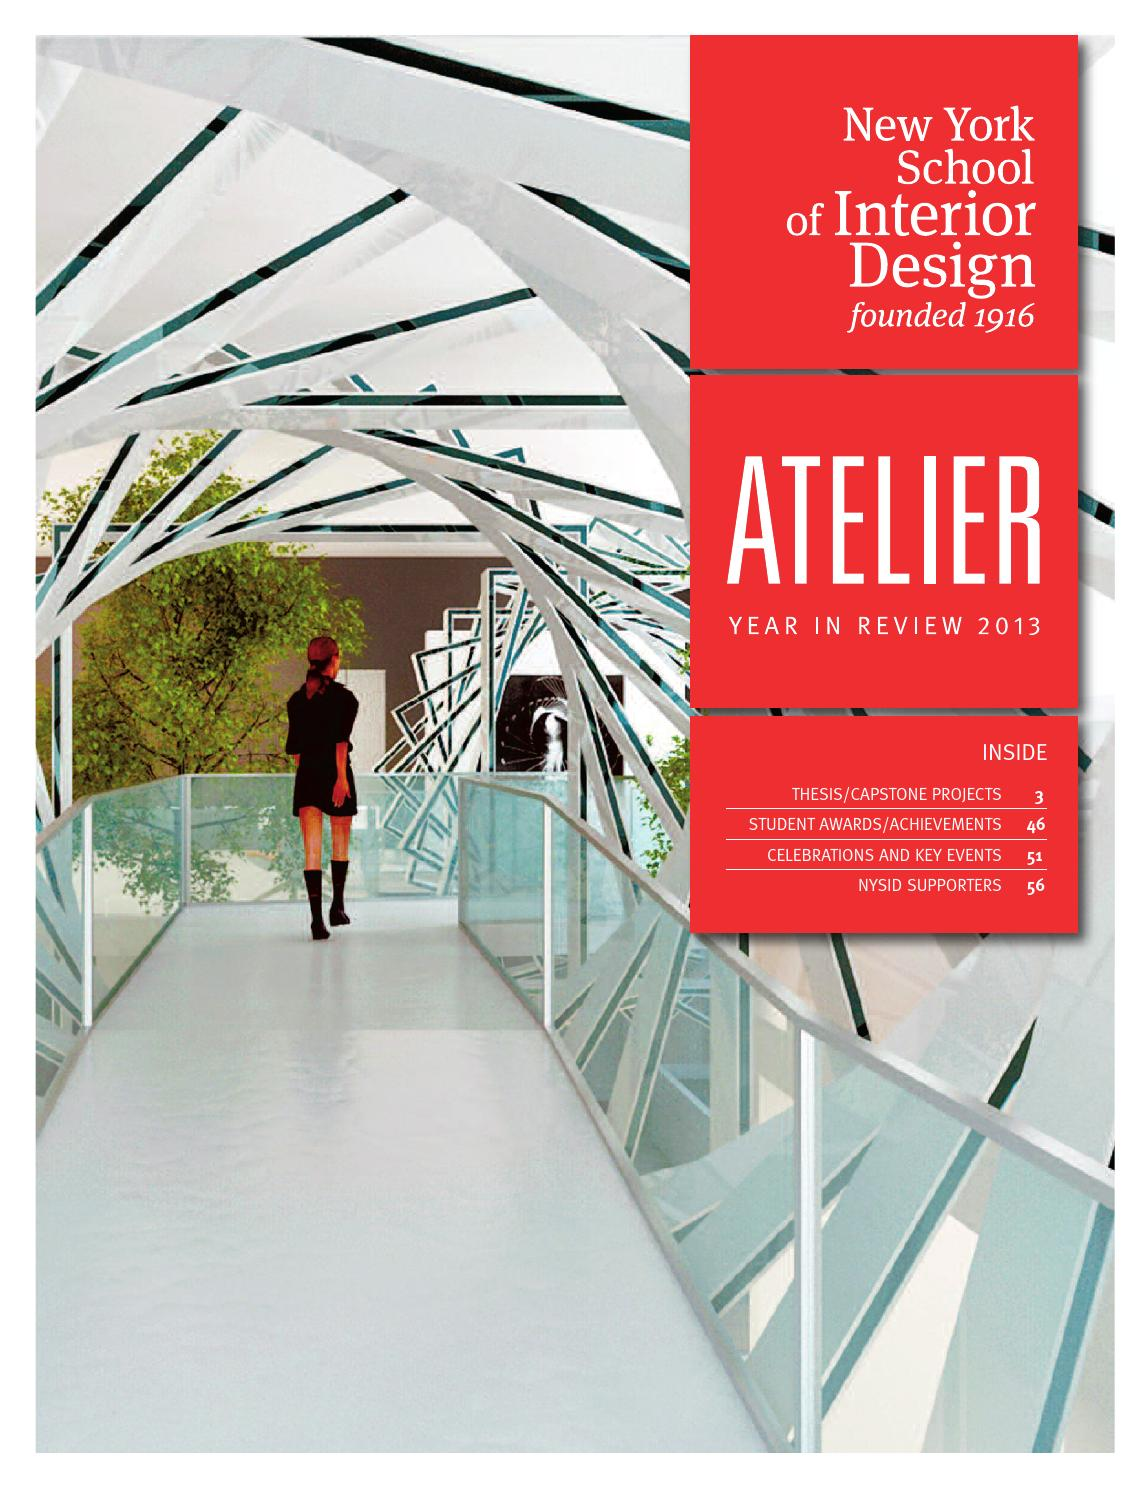 Issuu atelier year in review 2013 by new york school of - How many years is interior design school ...